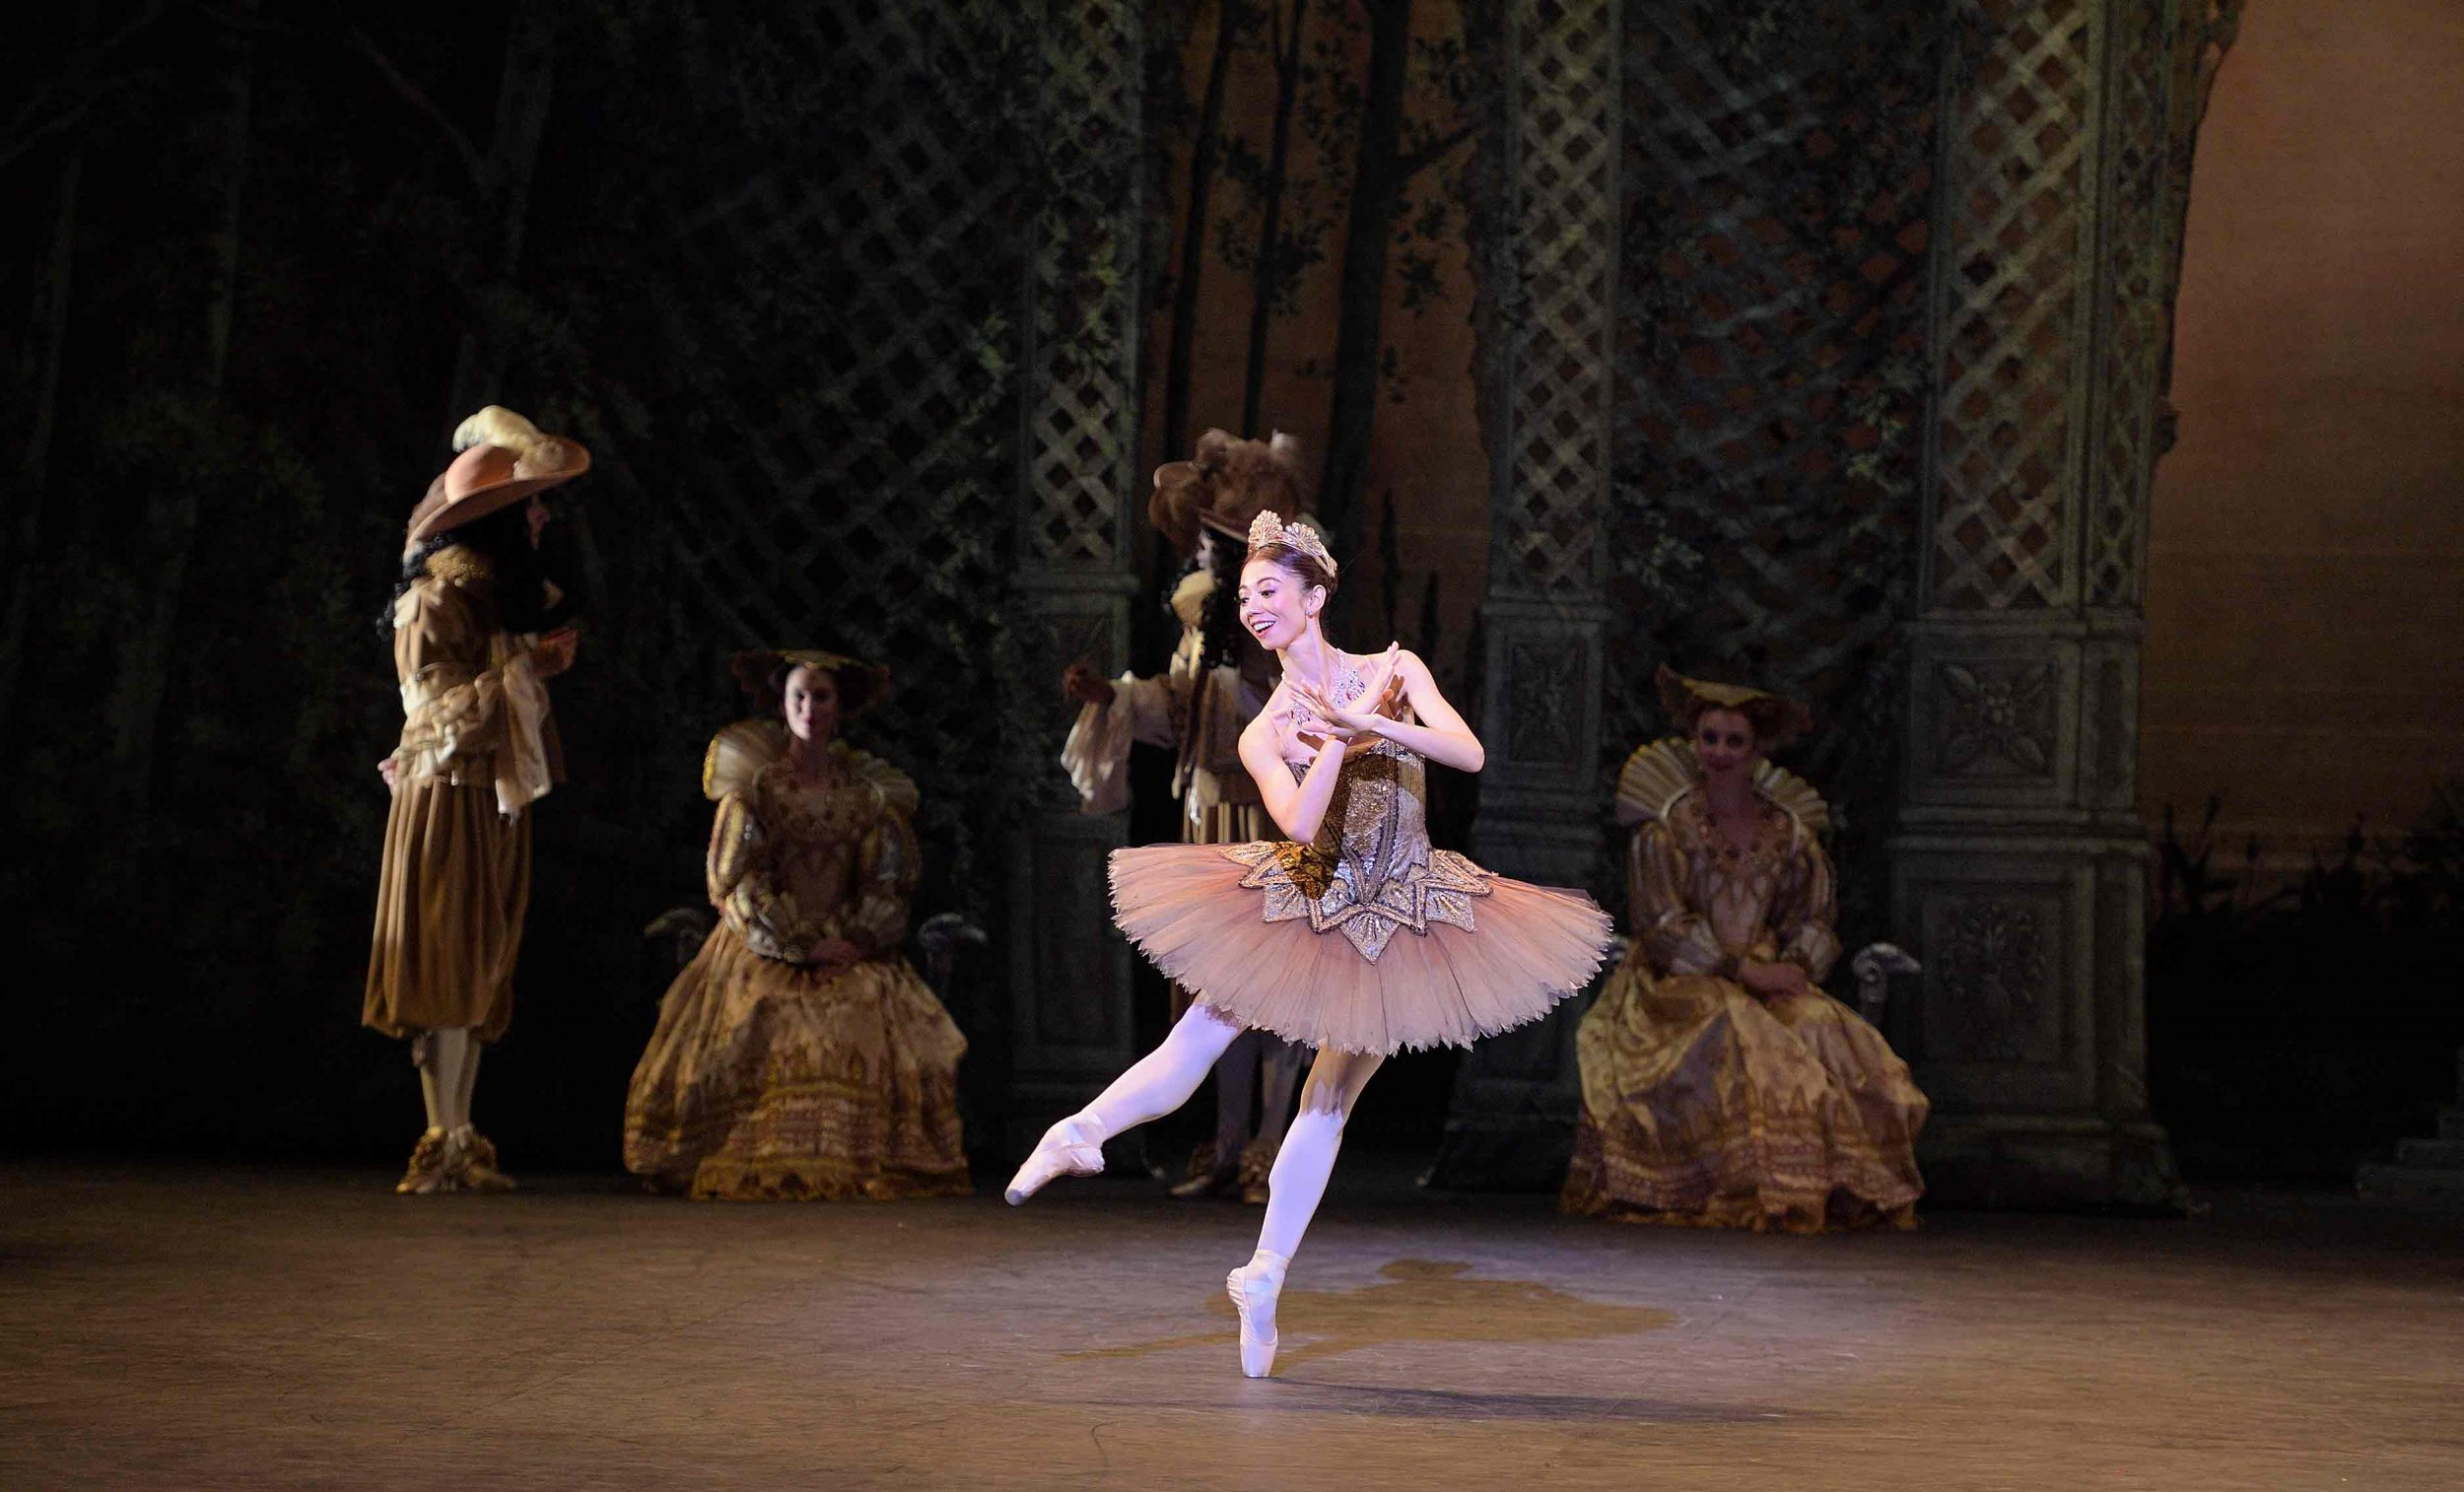 Senri-Kou-as-Songbird-Fairy-in-The-Sleeping-Beauty-©--Laurent-Liotardo-(2)_WEB